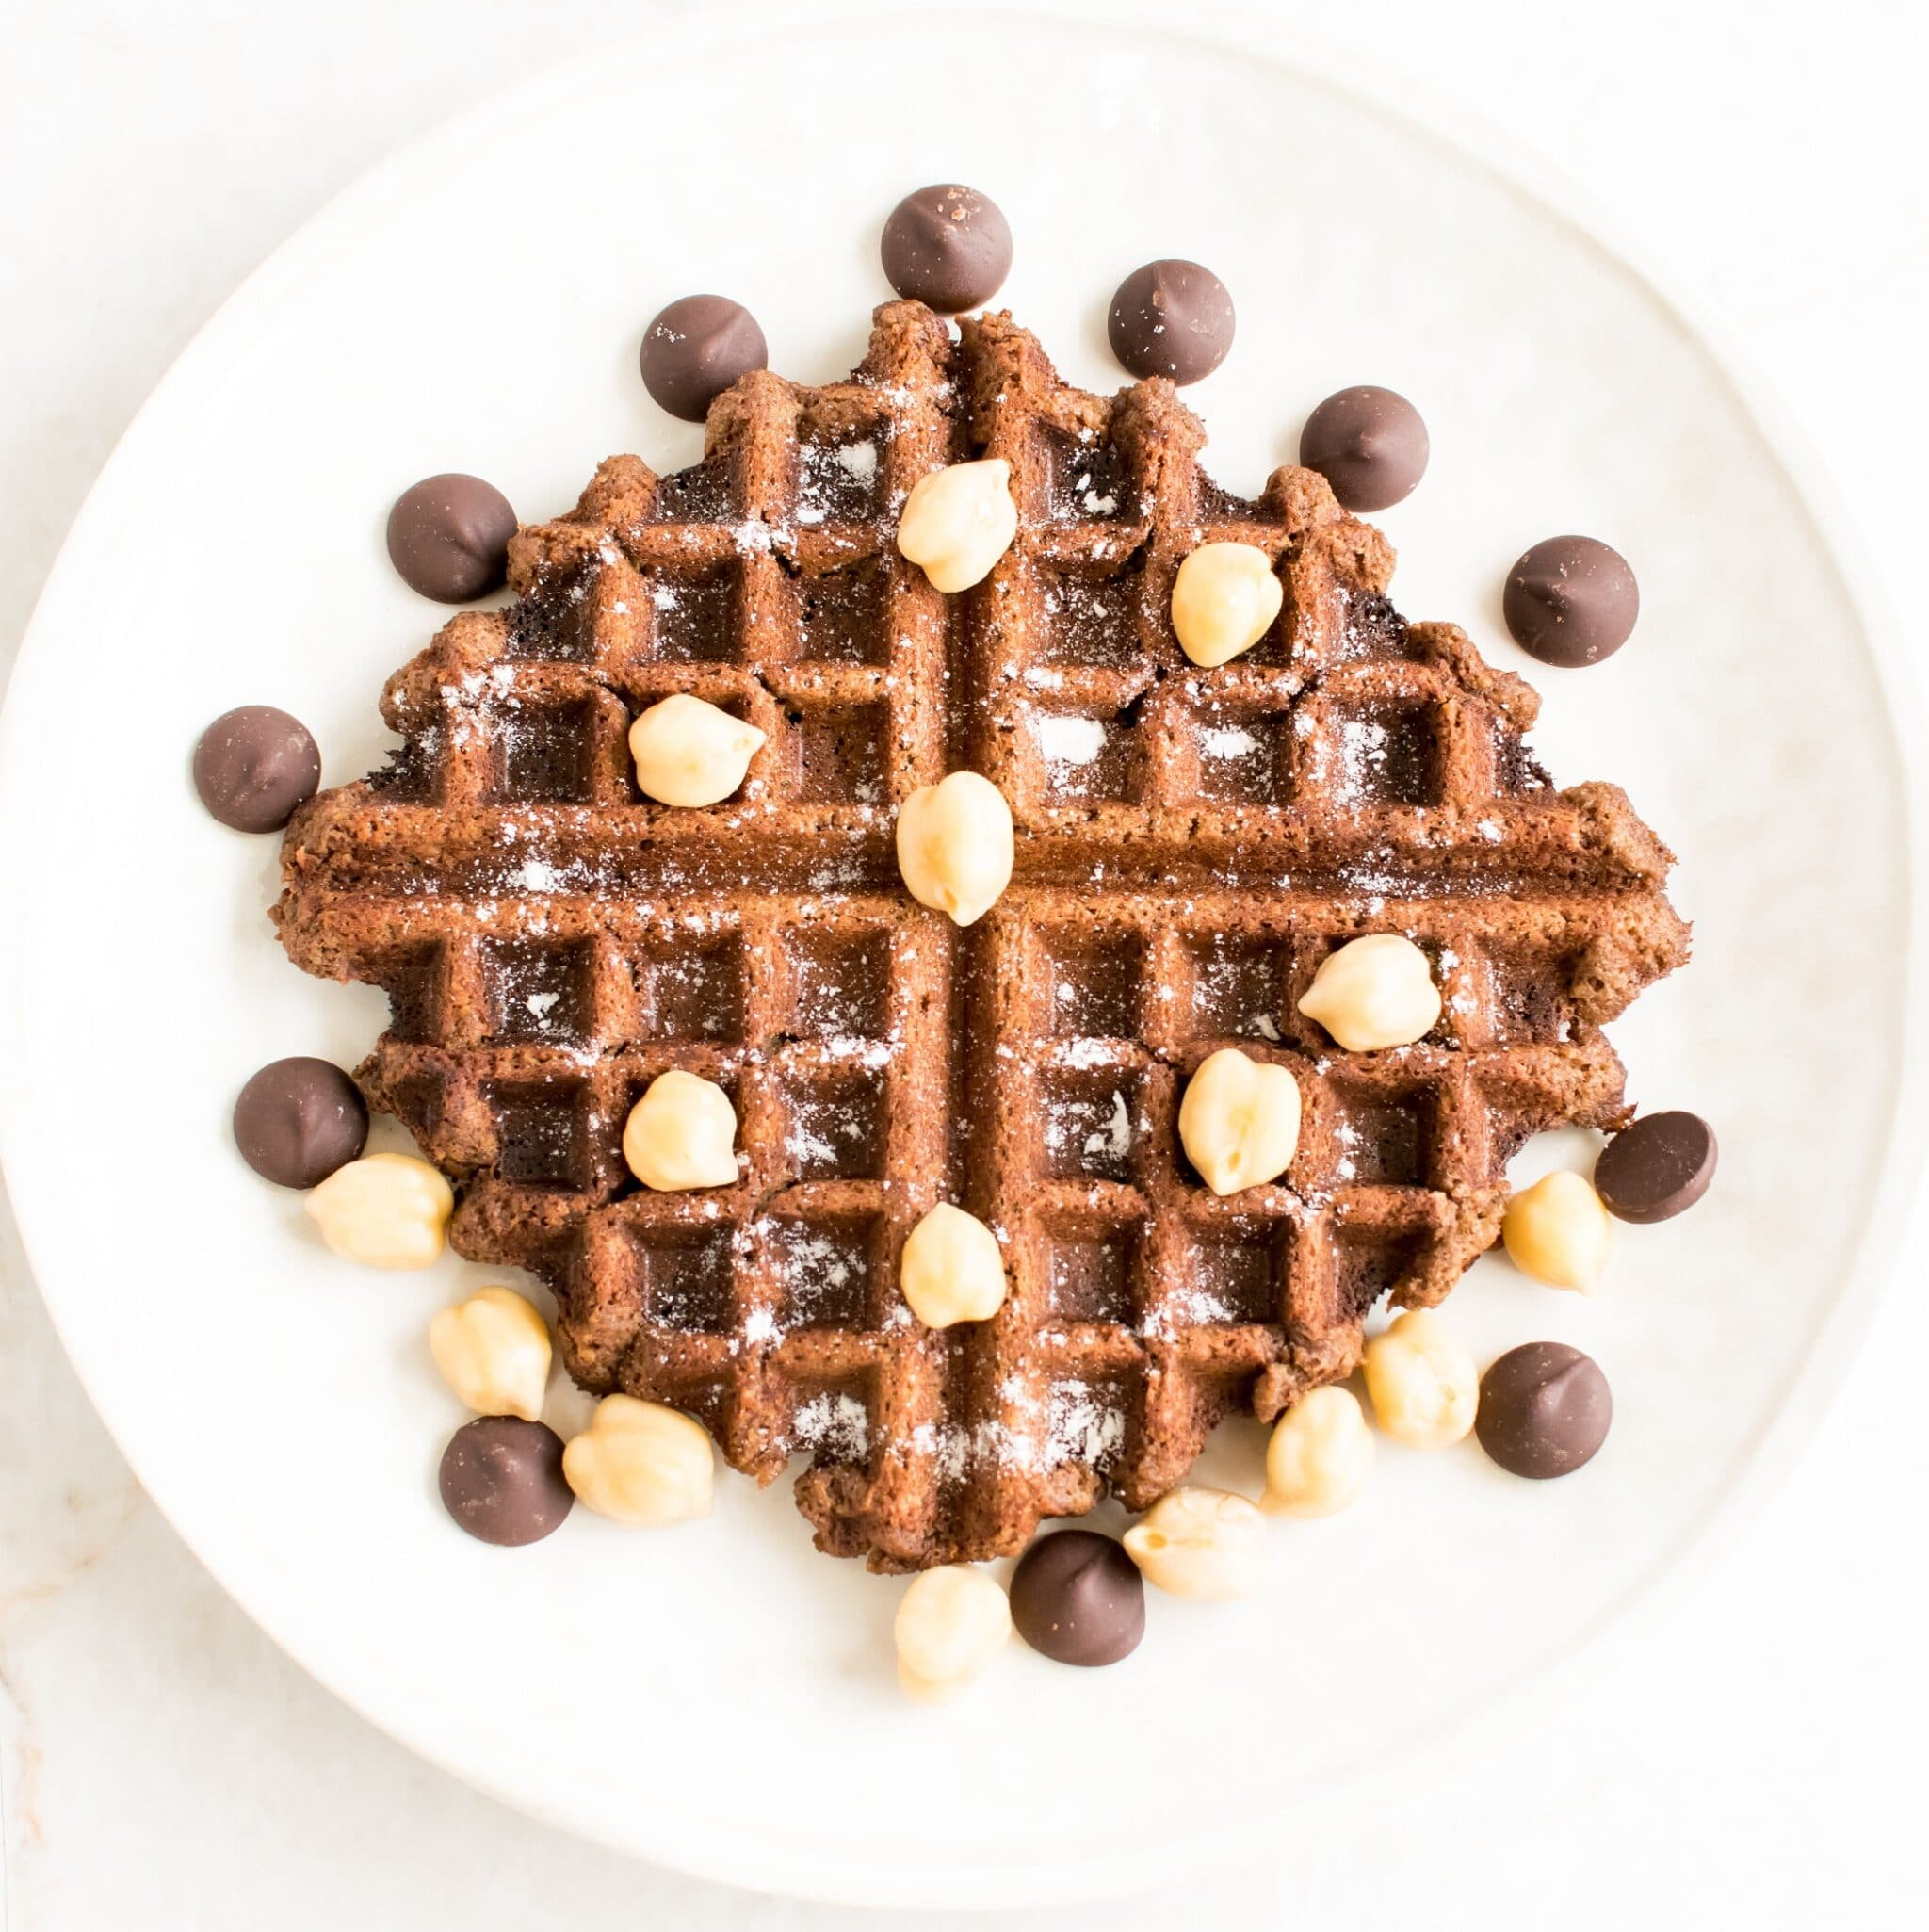 Chocolate Hummus Waffles | flourless, vegan, gluten free and protein rich delicious chocolatey breakfast/brunch | kiipfit.com